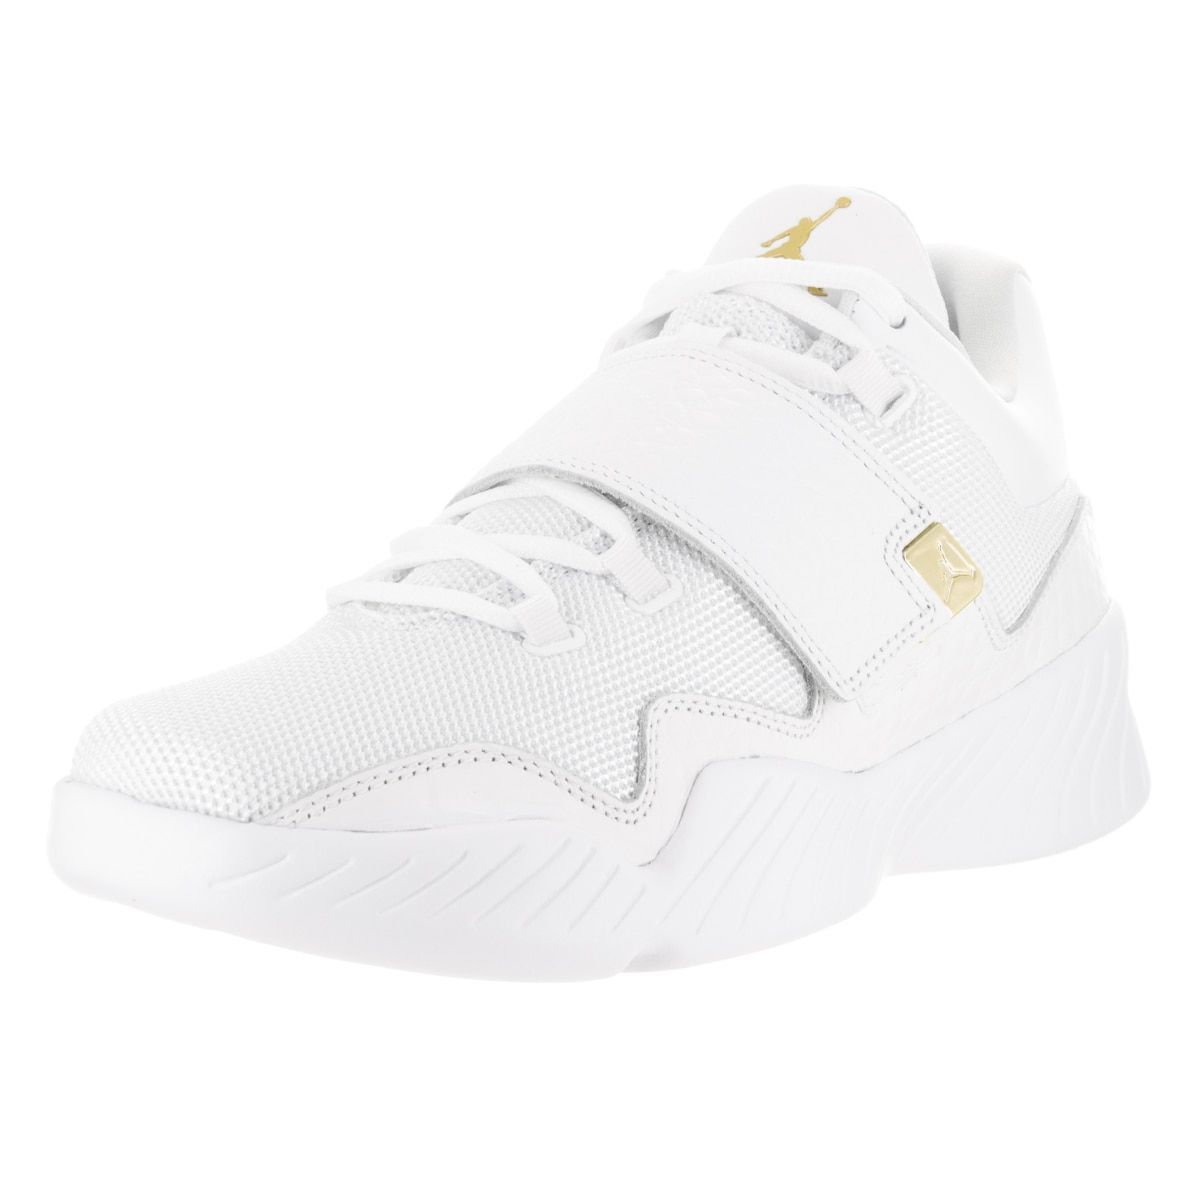 Nike Jordan Men's Jordan J23 Casual Shoes | Products